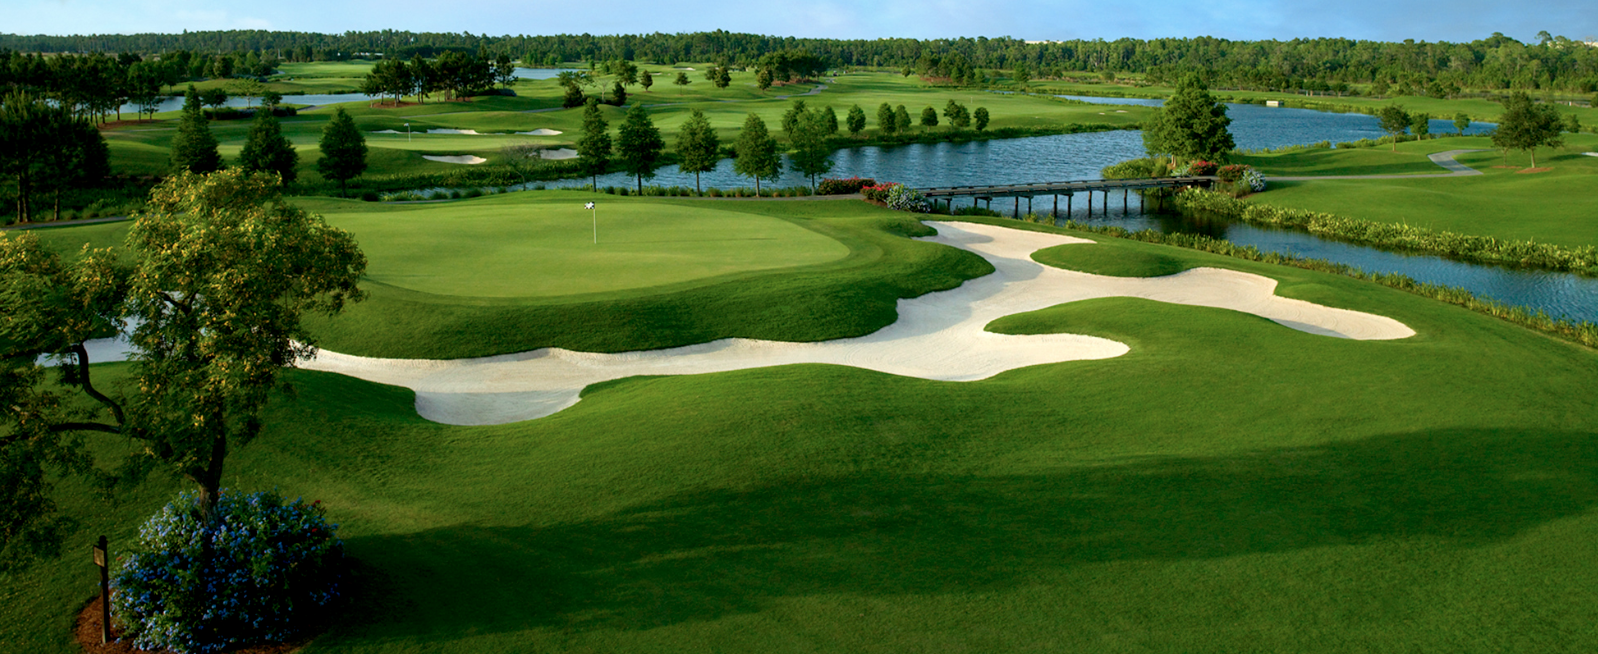 things-to-do-in-orlando-golf